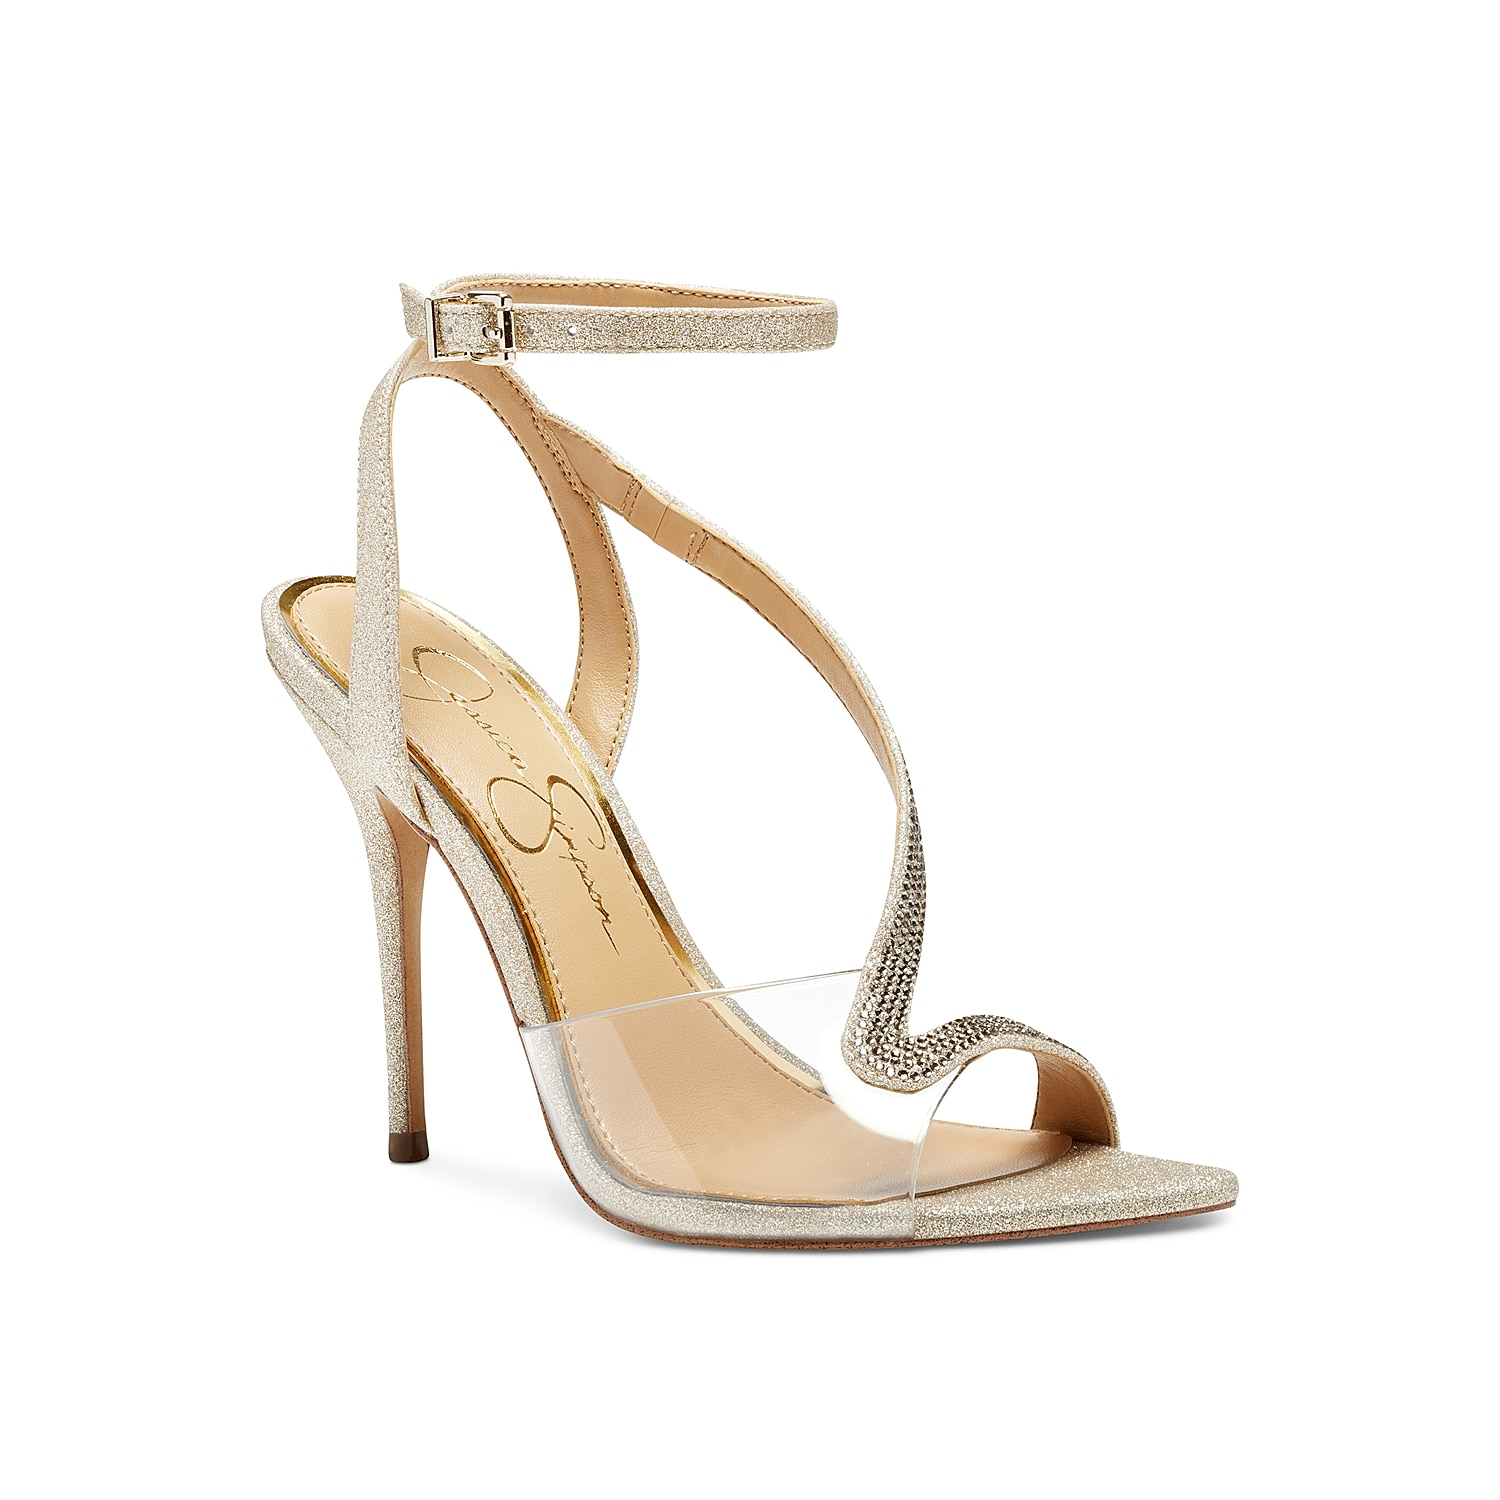 Stun the onlooker with the futuristic Whitley dress sandal from Jessica Simpson. Distinguished by a jewel-accented asymmetrical strap and transparent front band, this high heel sandal has an adjustable buckle strap closure to lend a feminine fit.